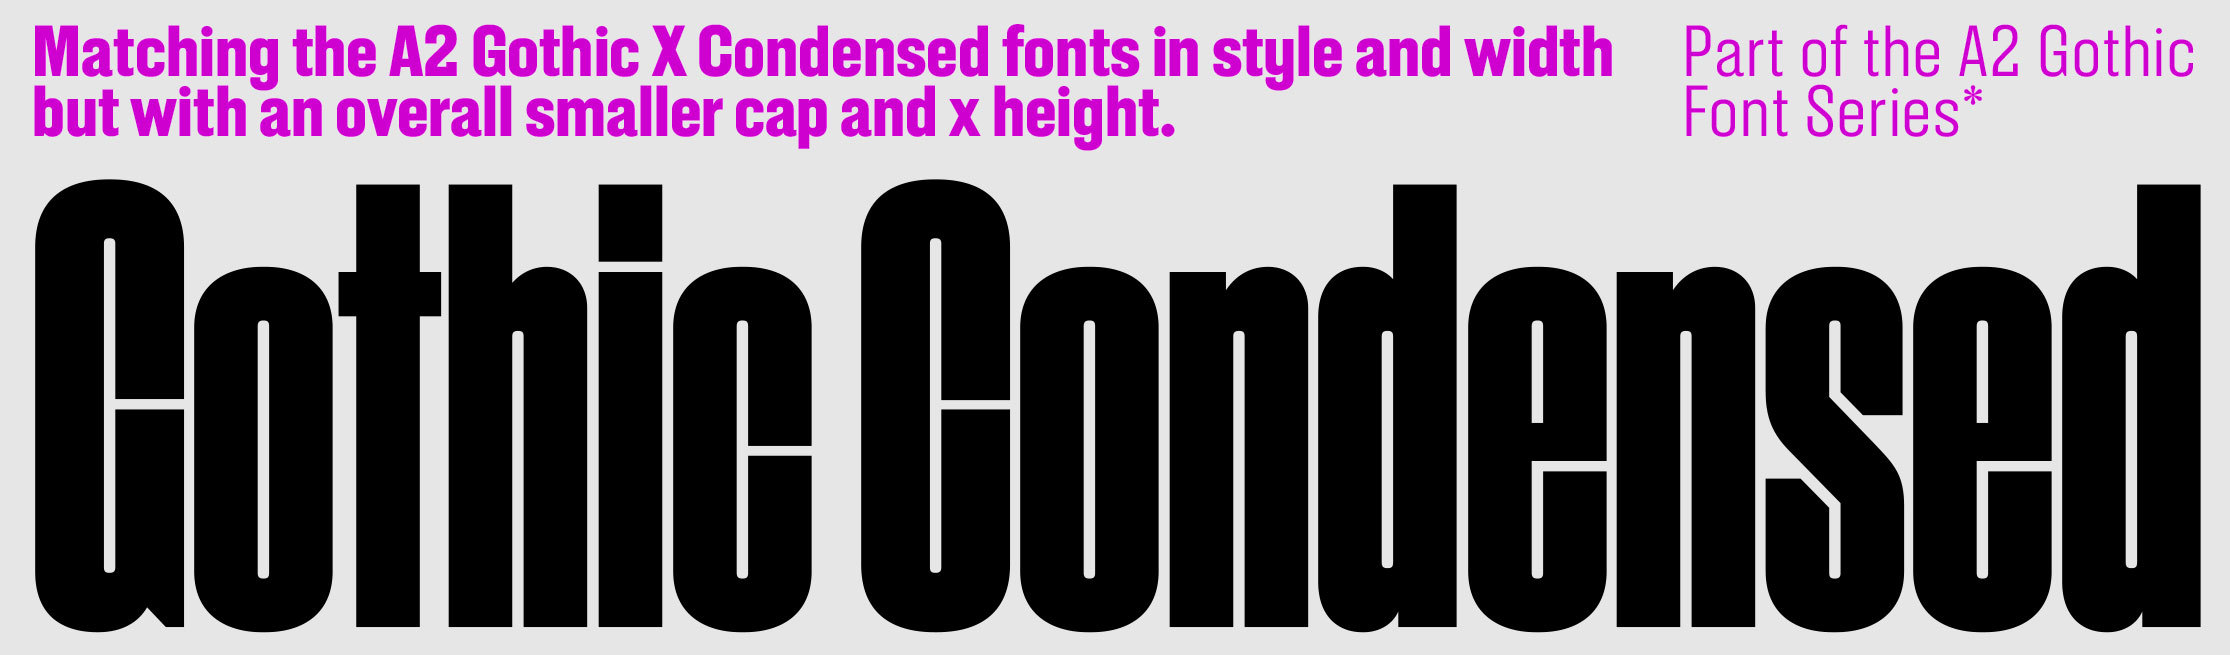 A2 Gothic Condensed sample